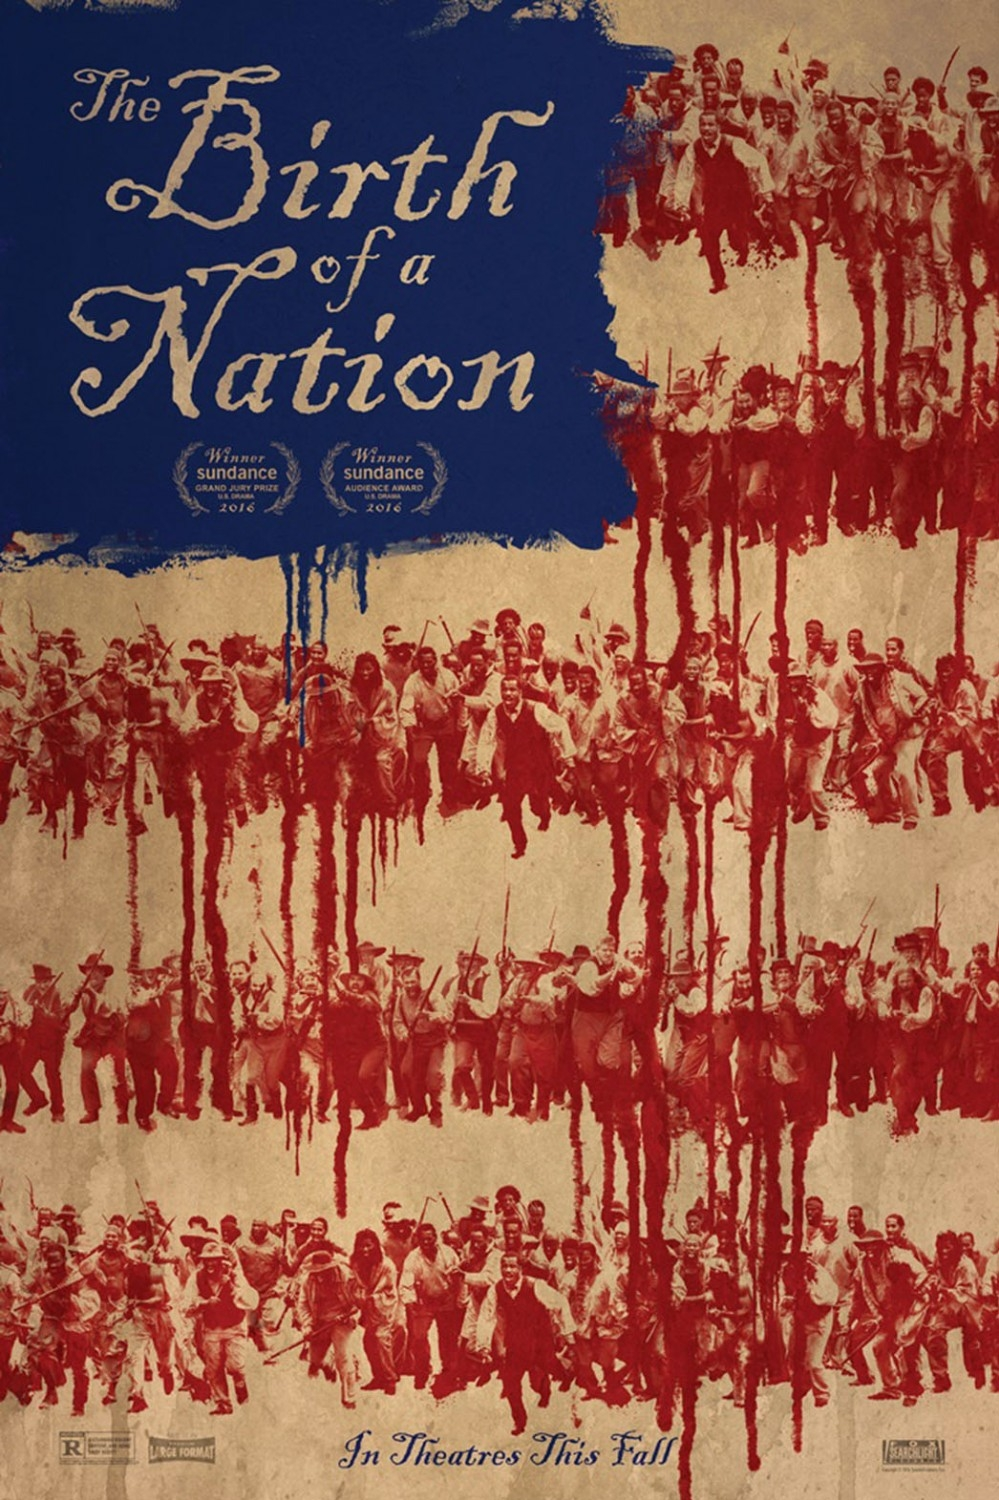 The Birth of a Nation poster, © 2016 Park Circus